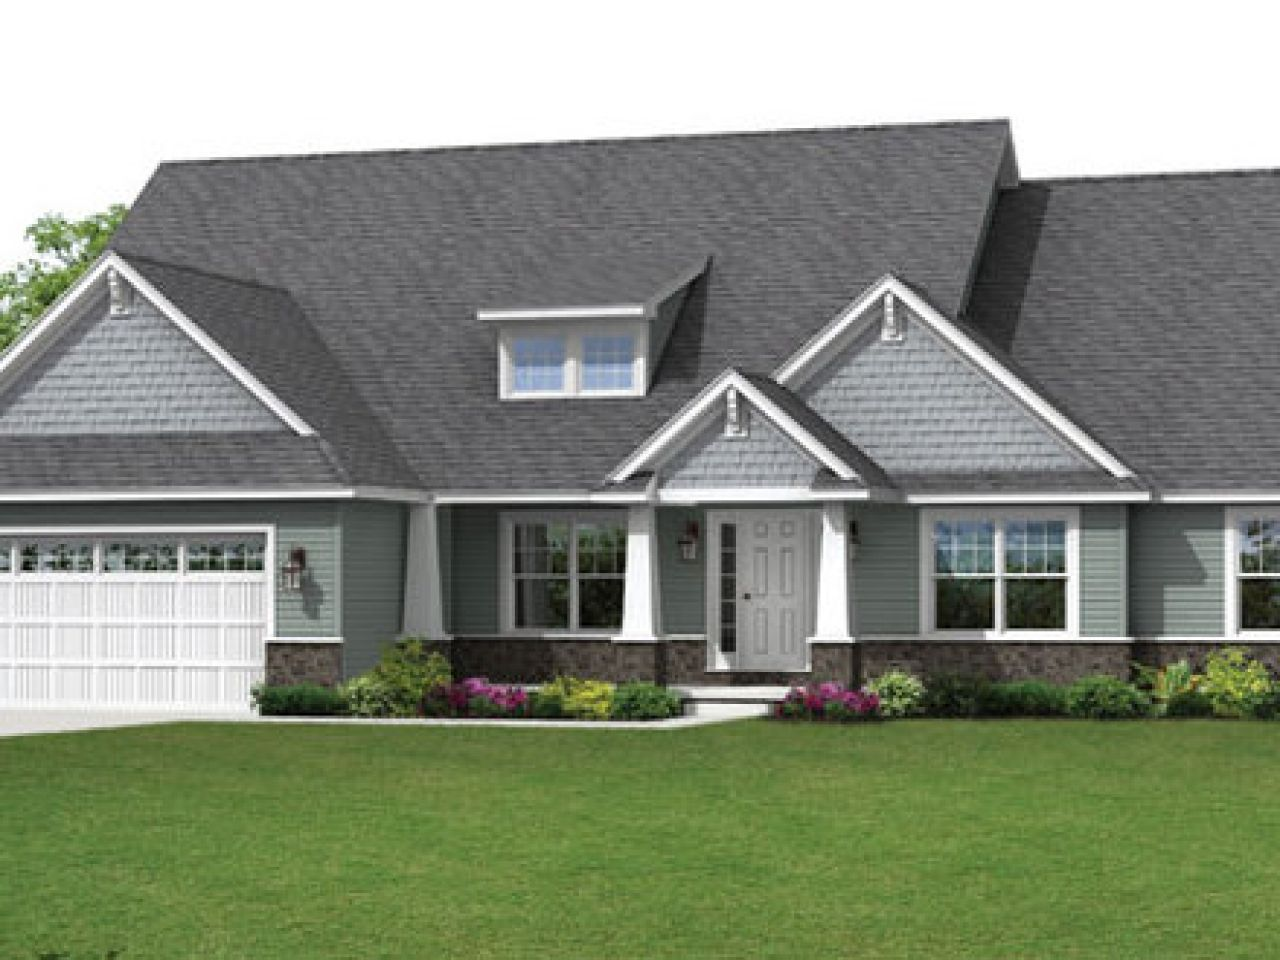 Rustic Brick Homes Craftsman Ranch Style House Plans Garage Best